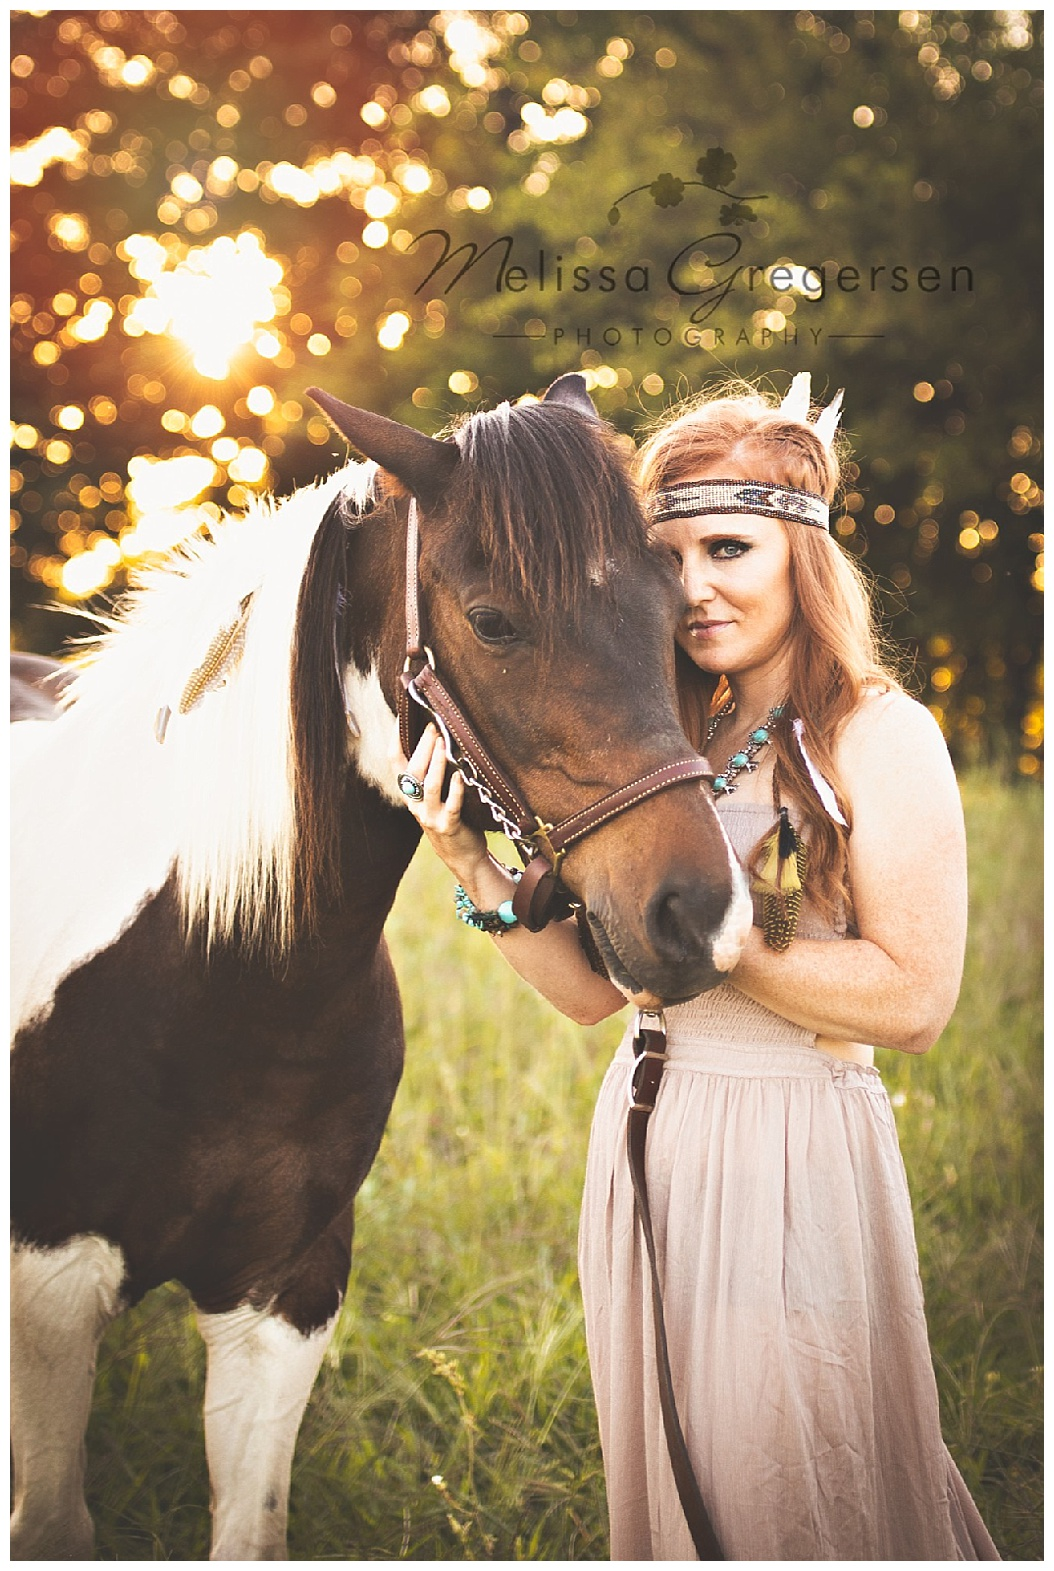 Native American inspired horse photography